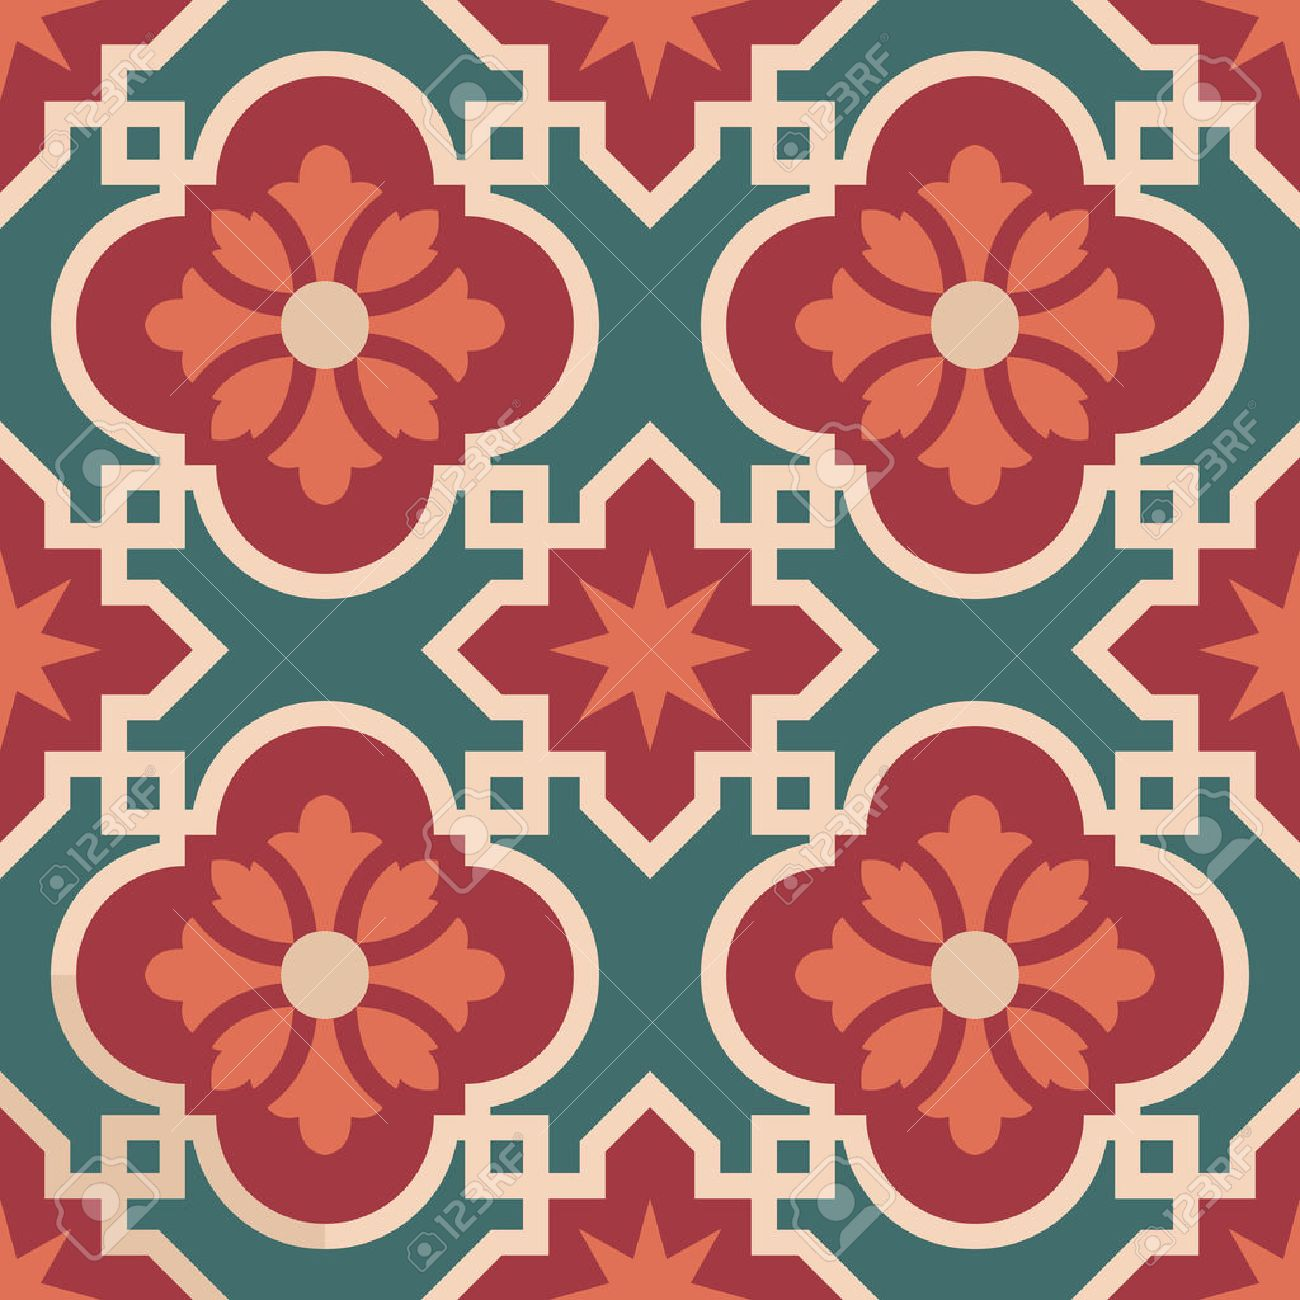 Vintage Ceramic Mosaic Floor Tile Seamless Pattern Traditional